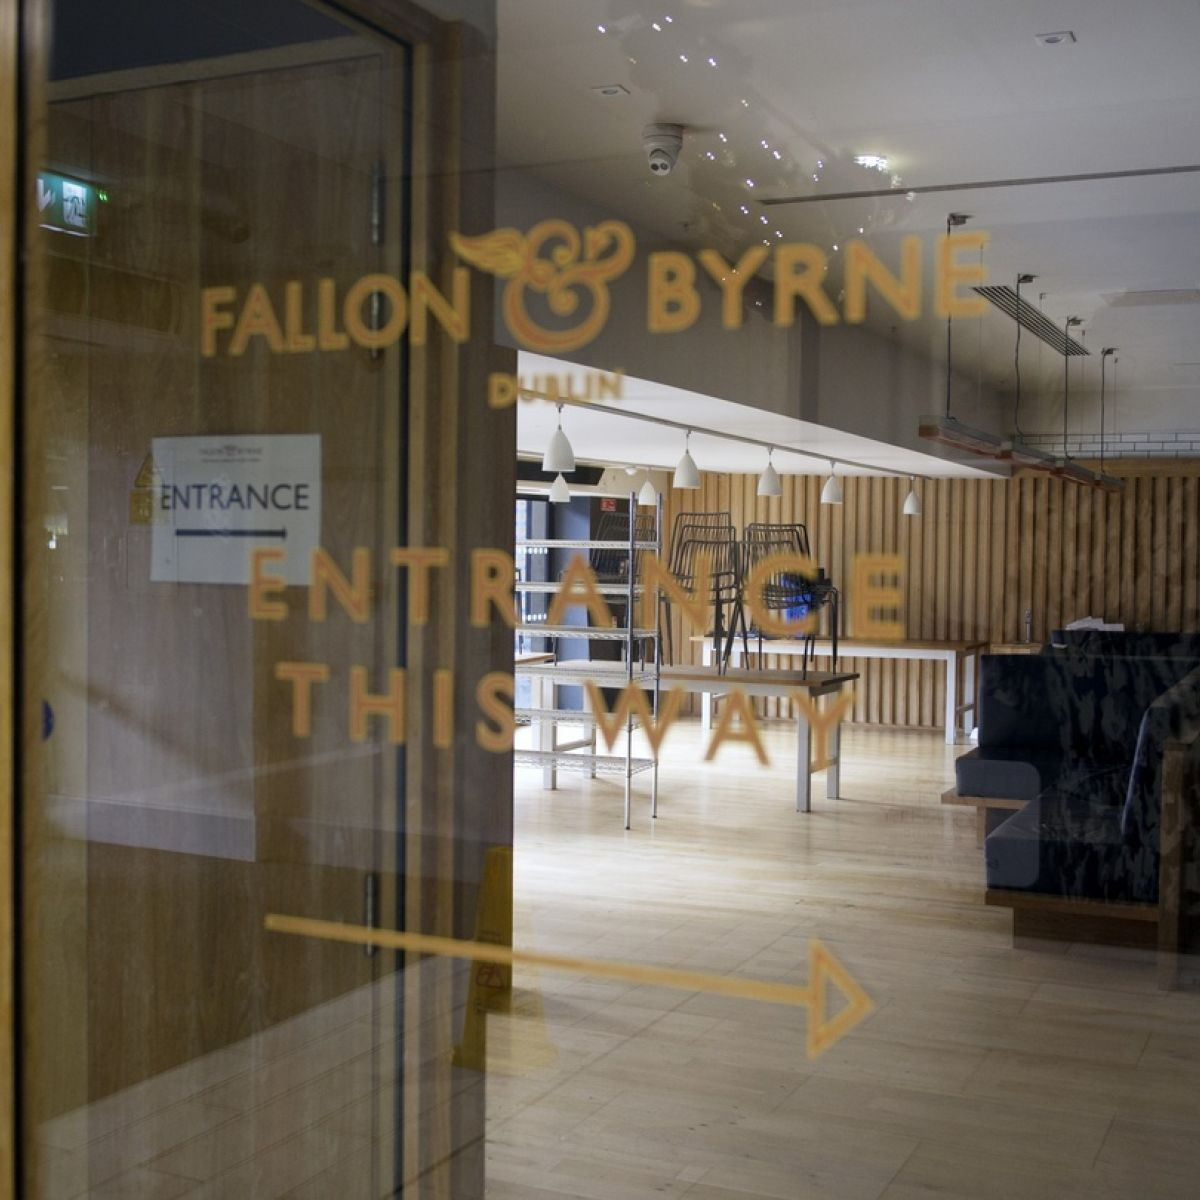 Fallon & Byrne closure is a timely warning for Dublin restaurants